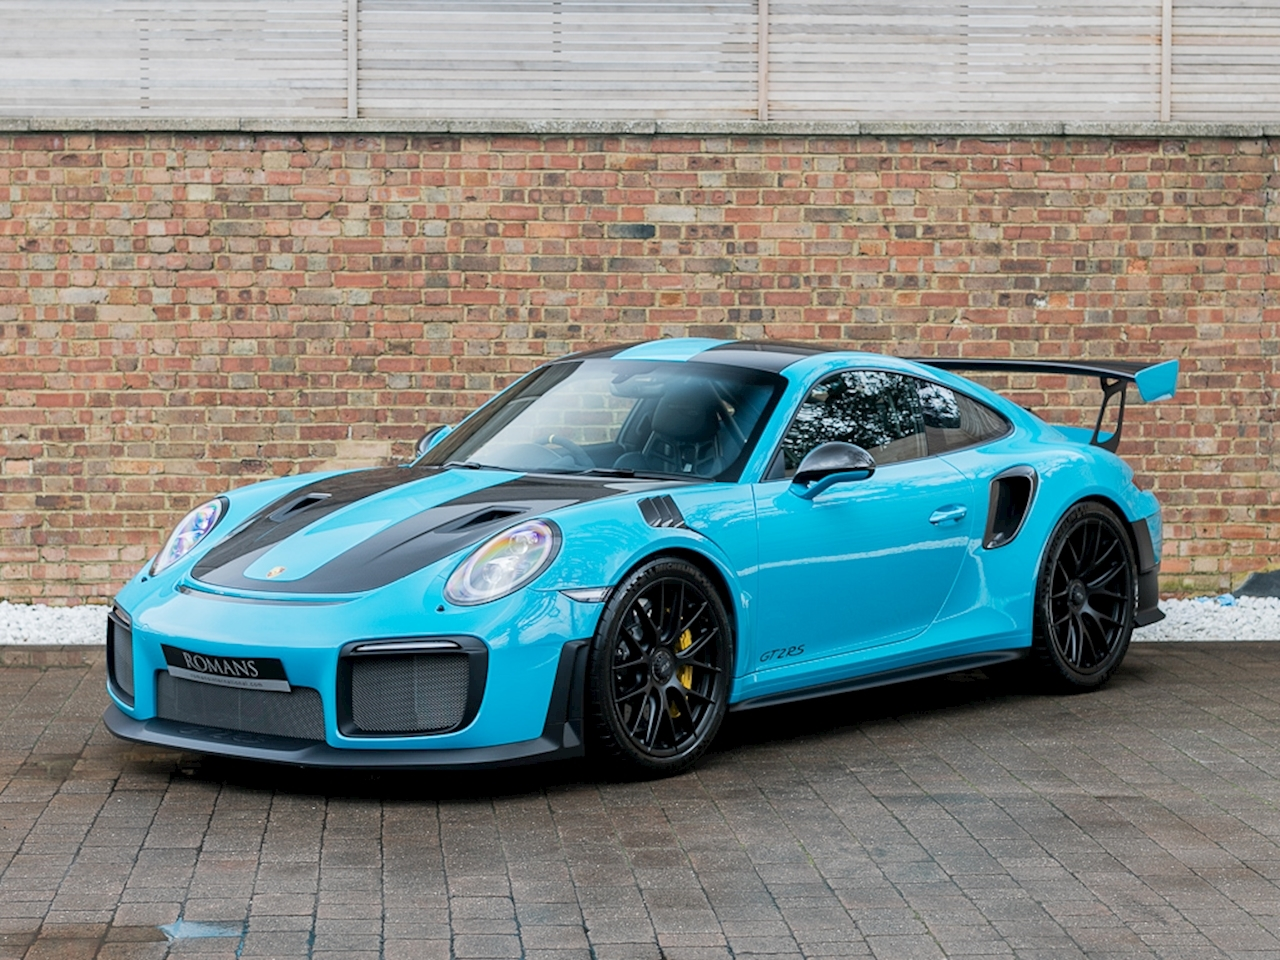 2018 Used Porsche 911 Gt2 Rs Pdk Miami Blue